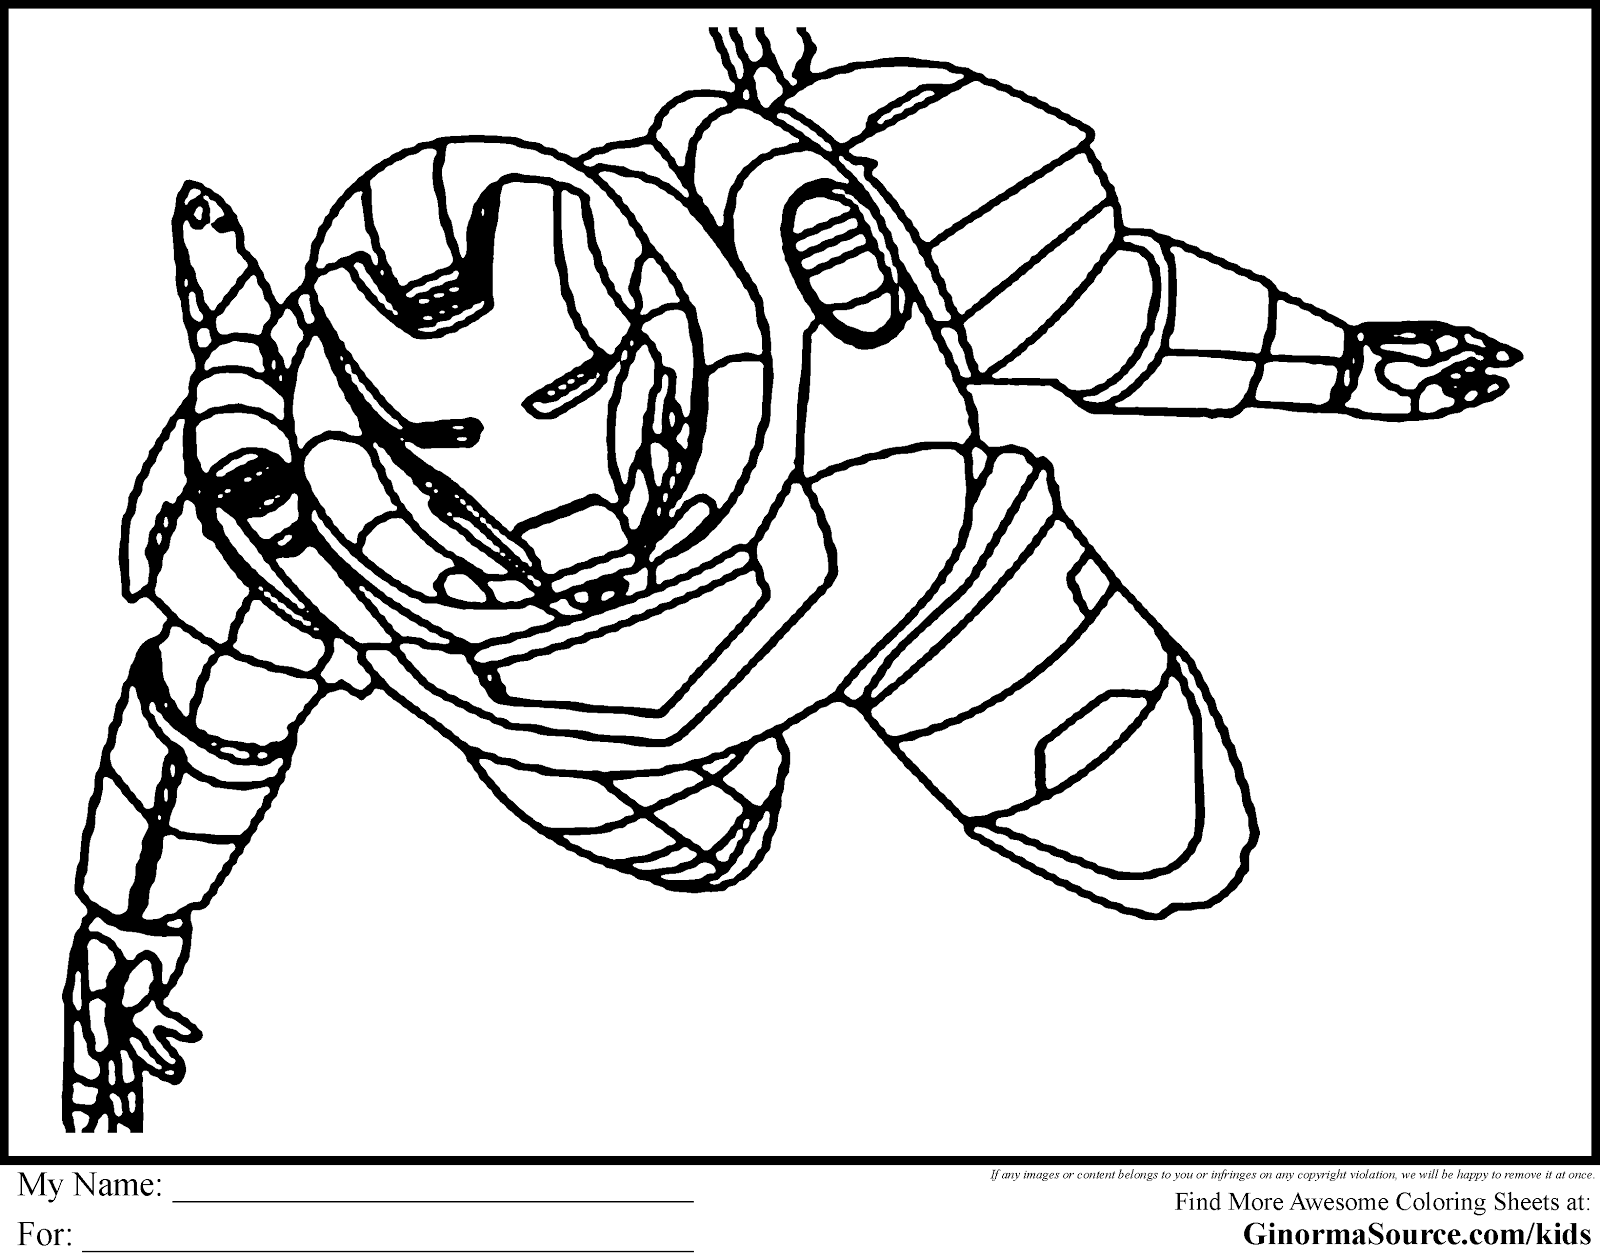 super hero coloring pages - Superhero Coloring Pages Spiderman Coloring Pages 4 U